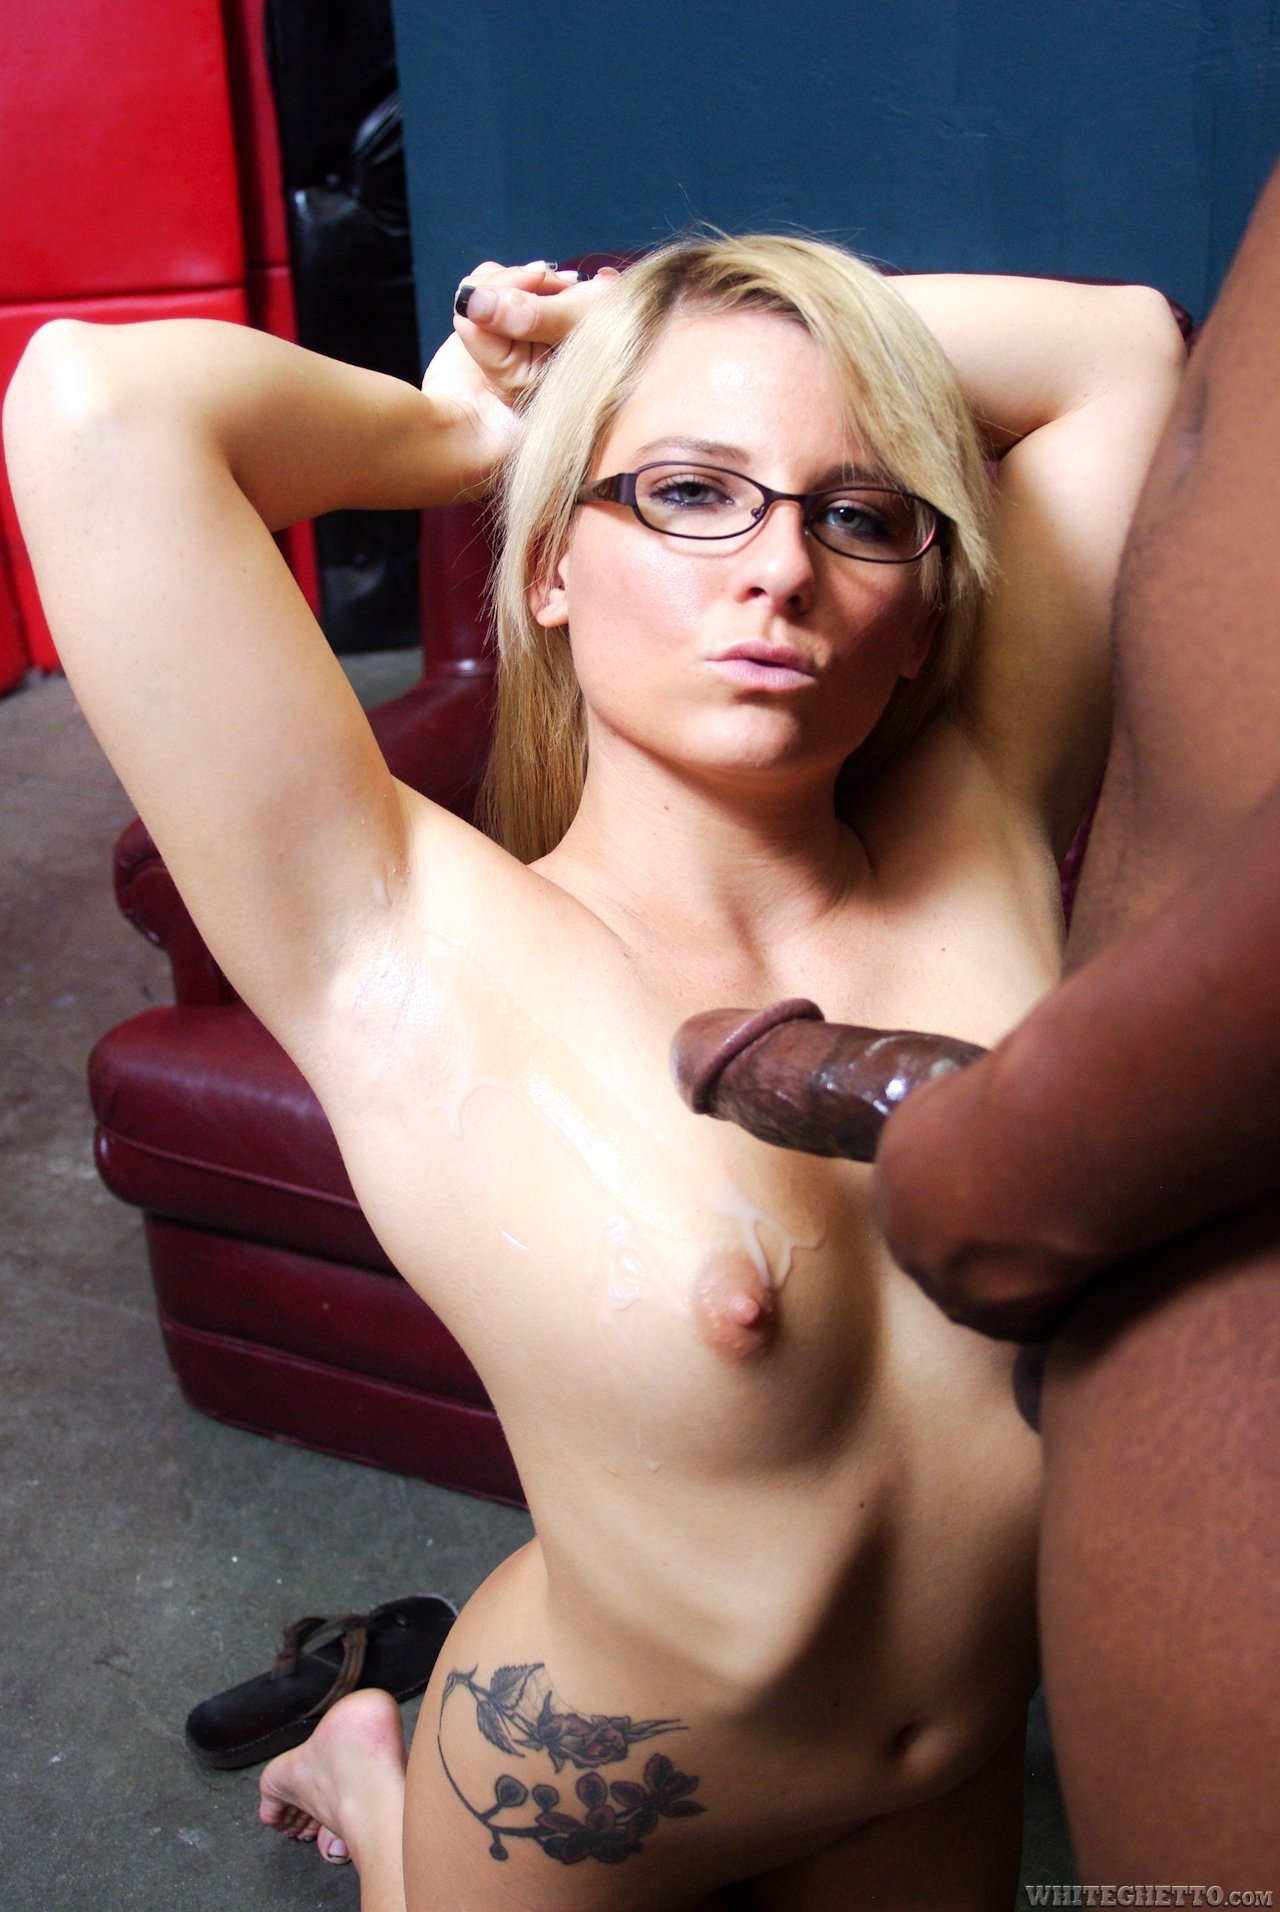 Her first black creampie #15